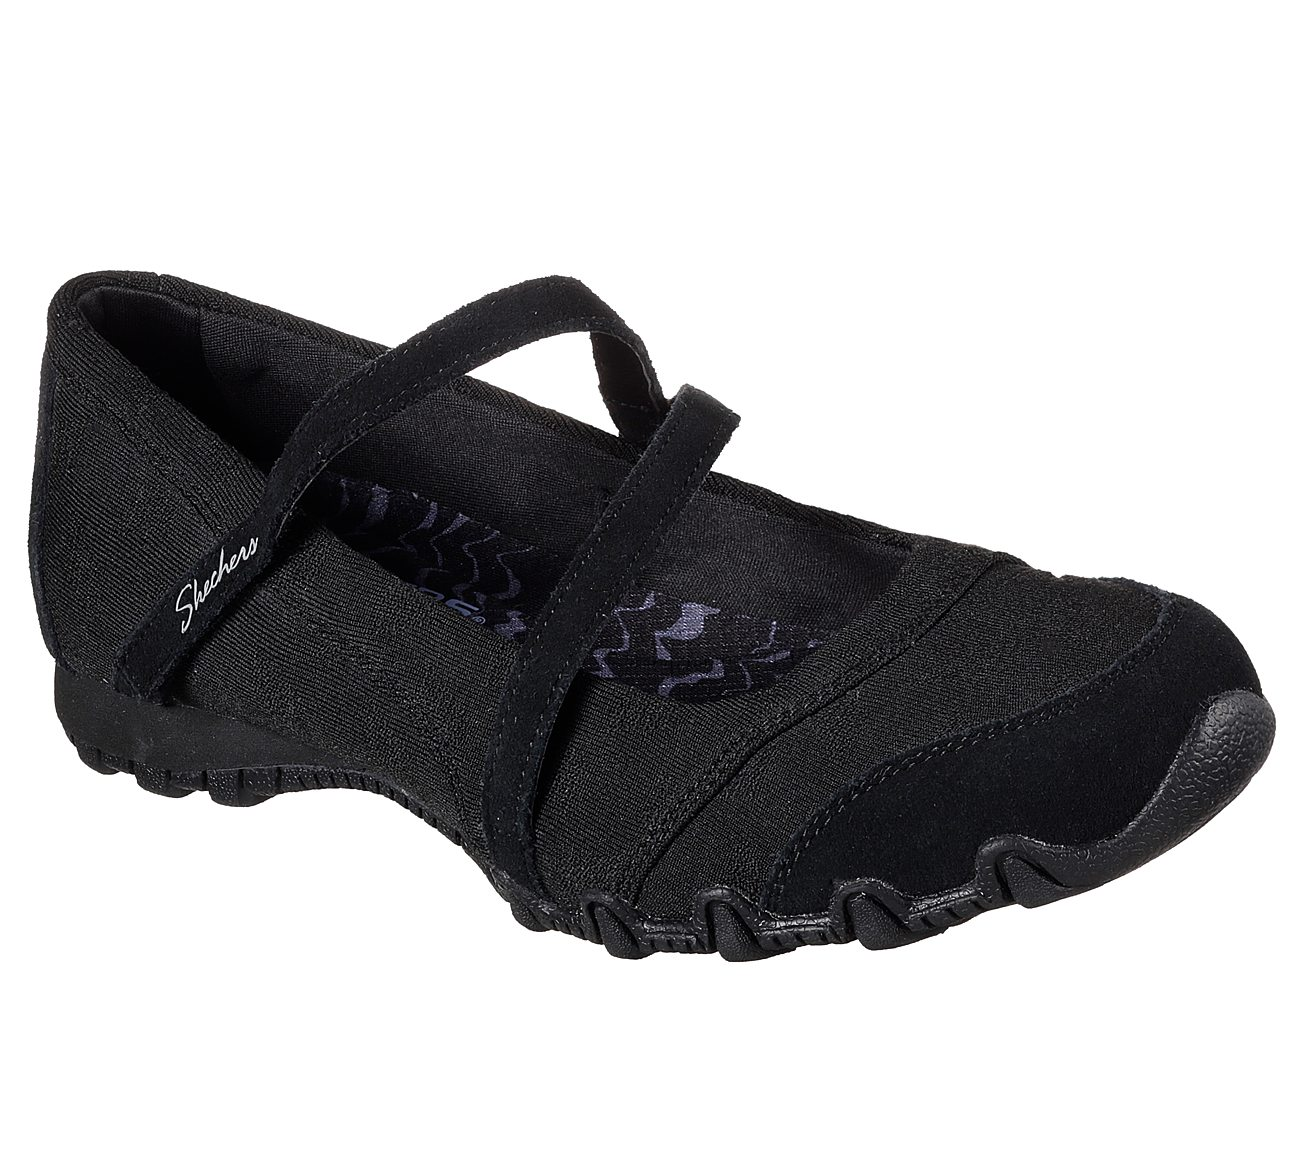 Details about Skechers Womens SZ 6 M Black Suede Relaxed Fit Slip On Mary Jane Memory Foam